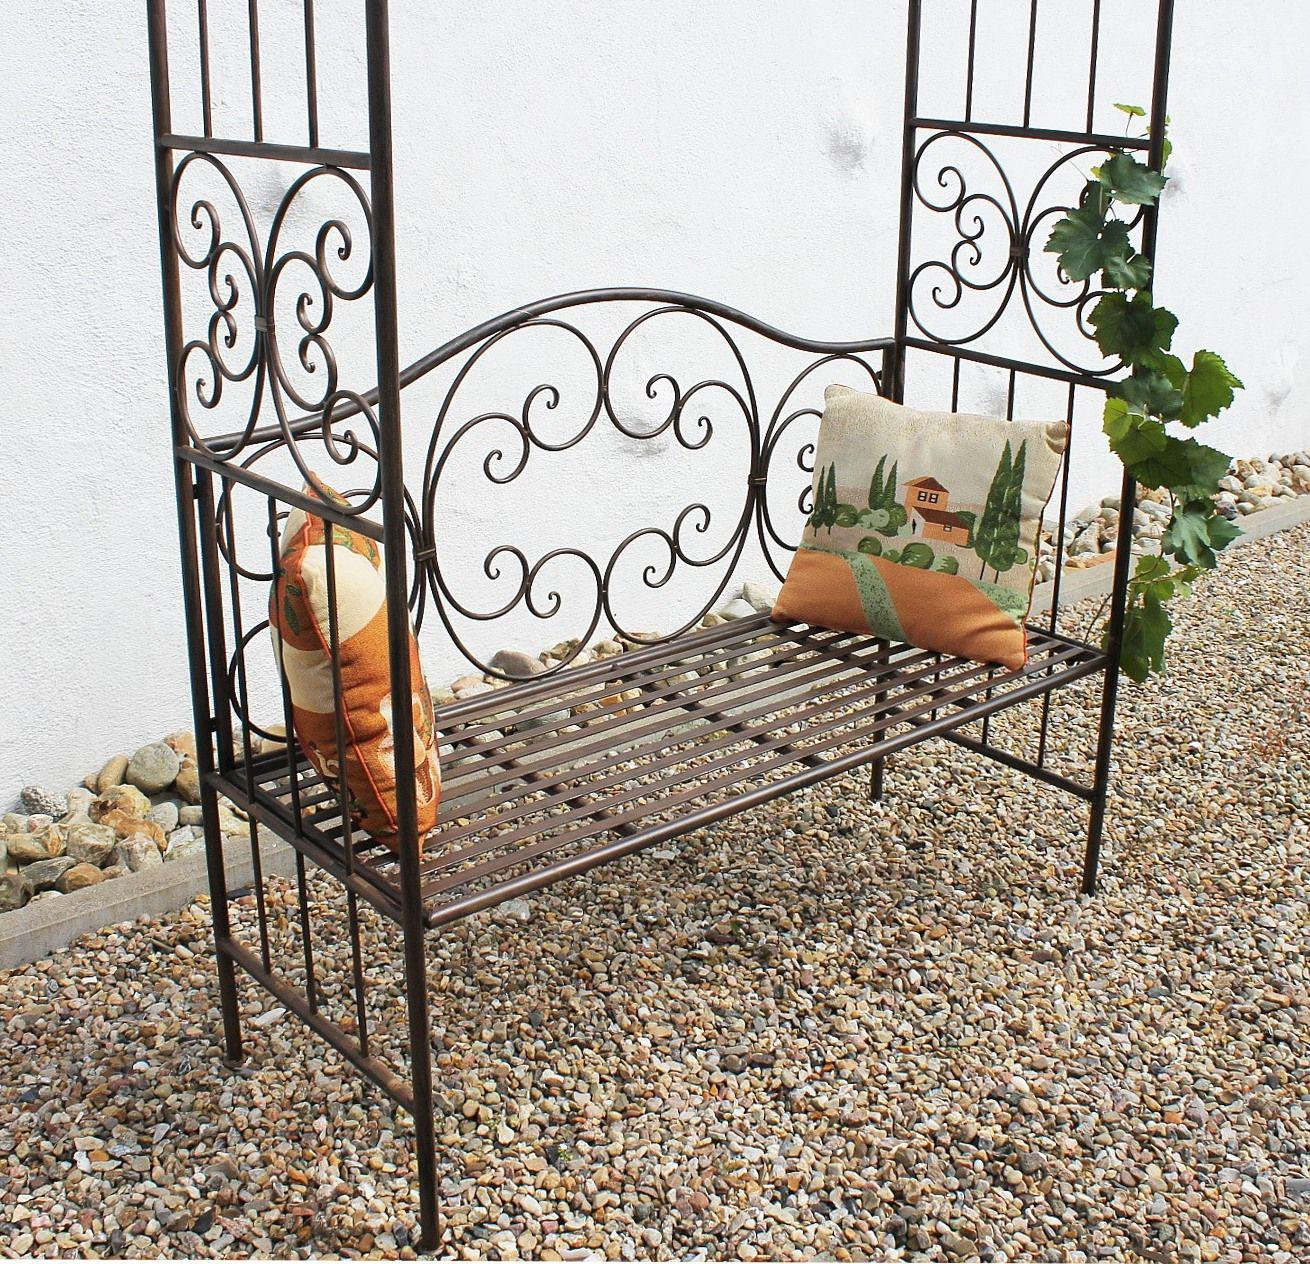 rosenbogen mit bank 120852 metall 250cm gartenbank spalier pergola kletterhilfe ebay. Black Bedroom Furniture Sets. Home Design Ideas